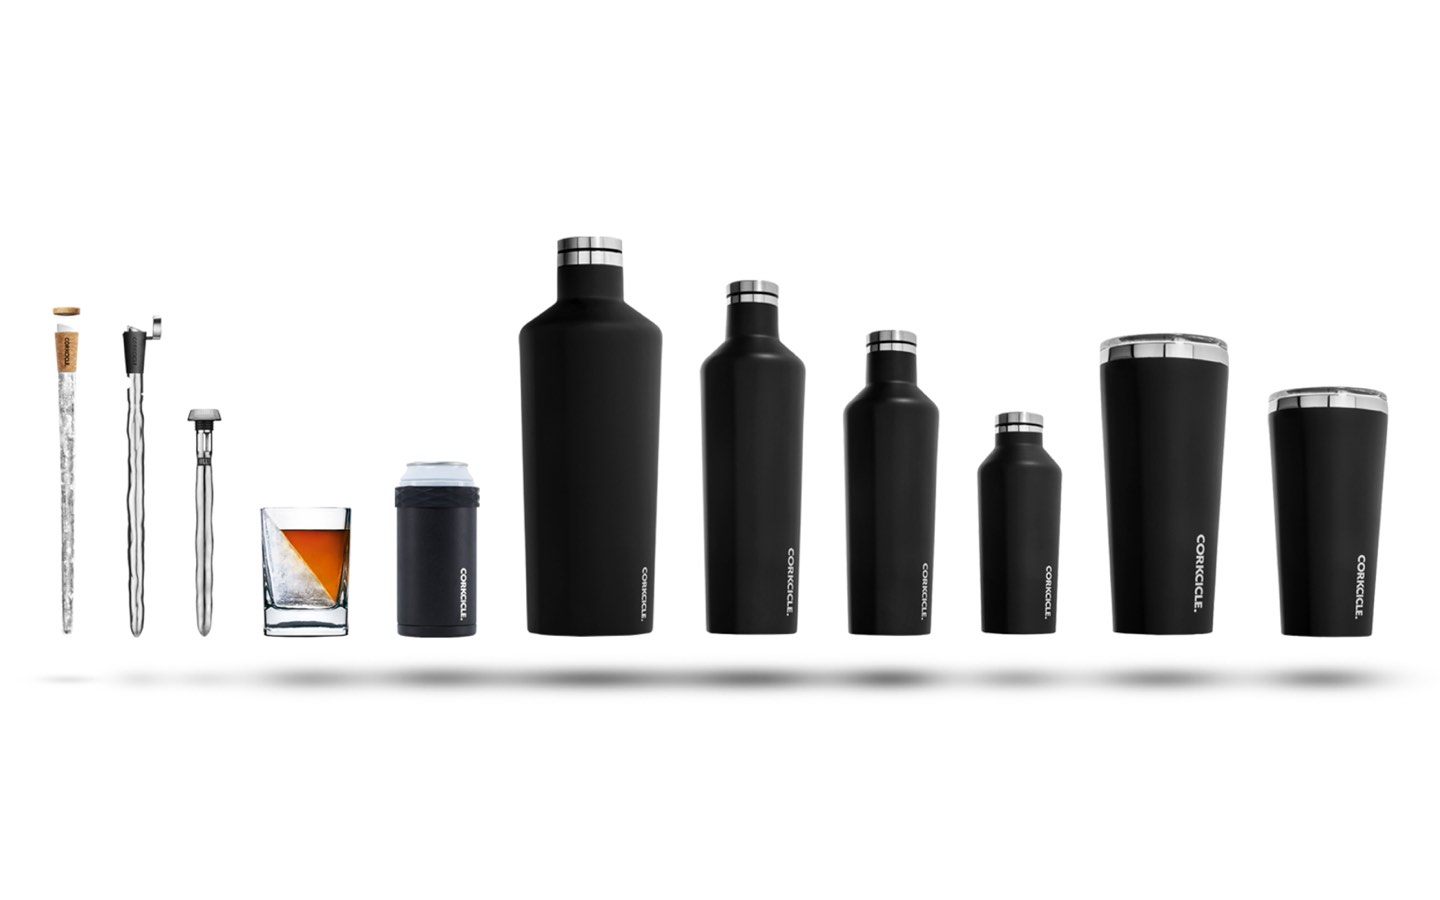 Corkcicle Packaging